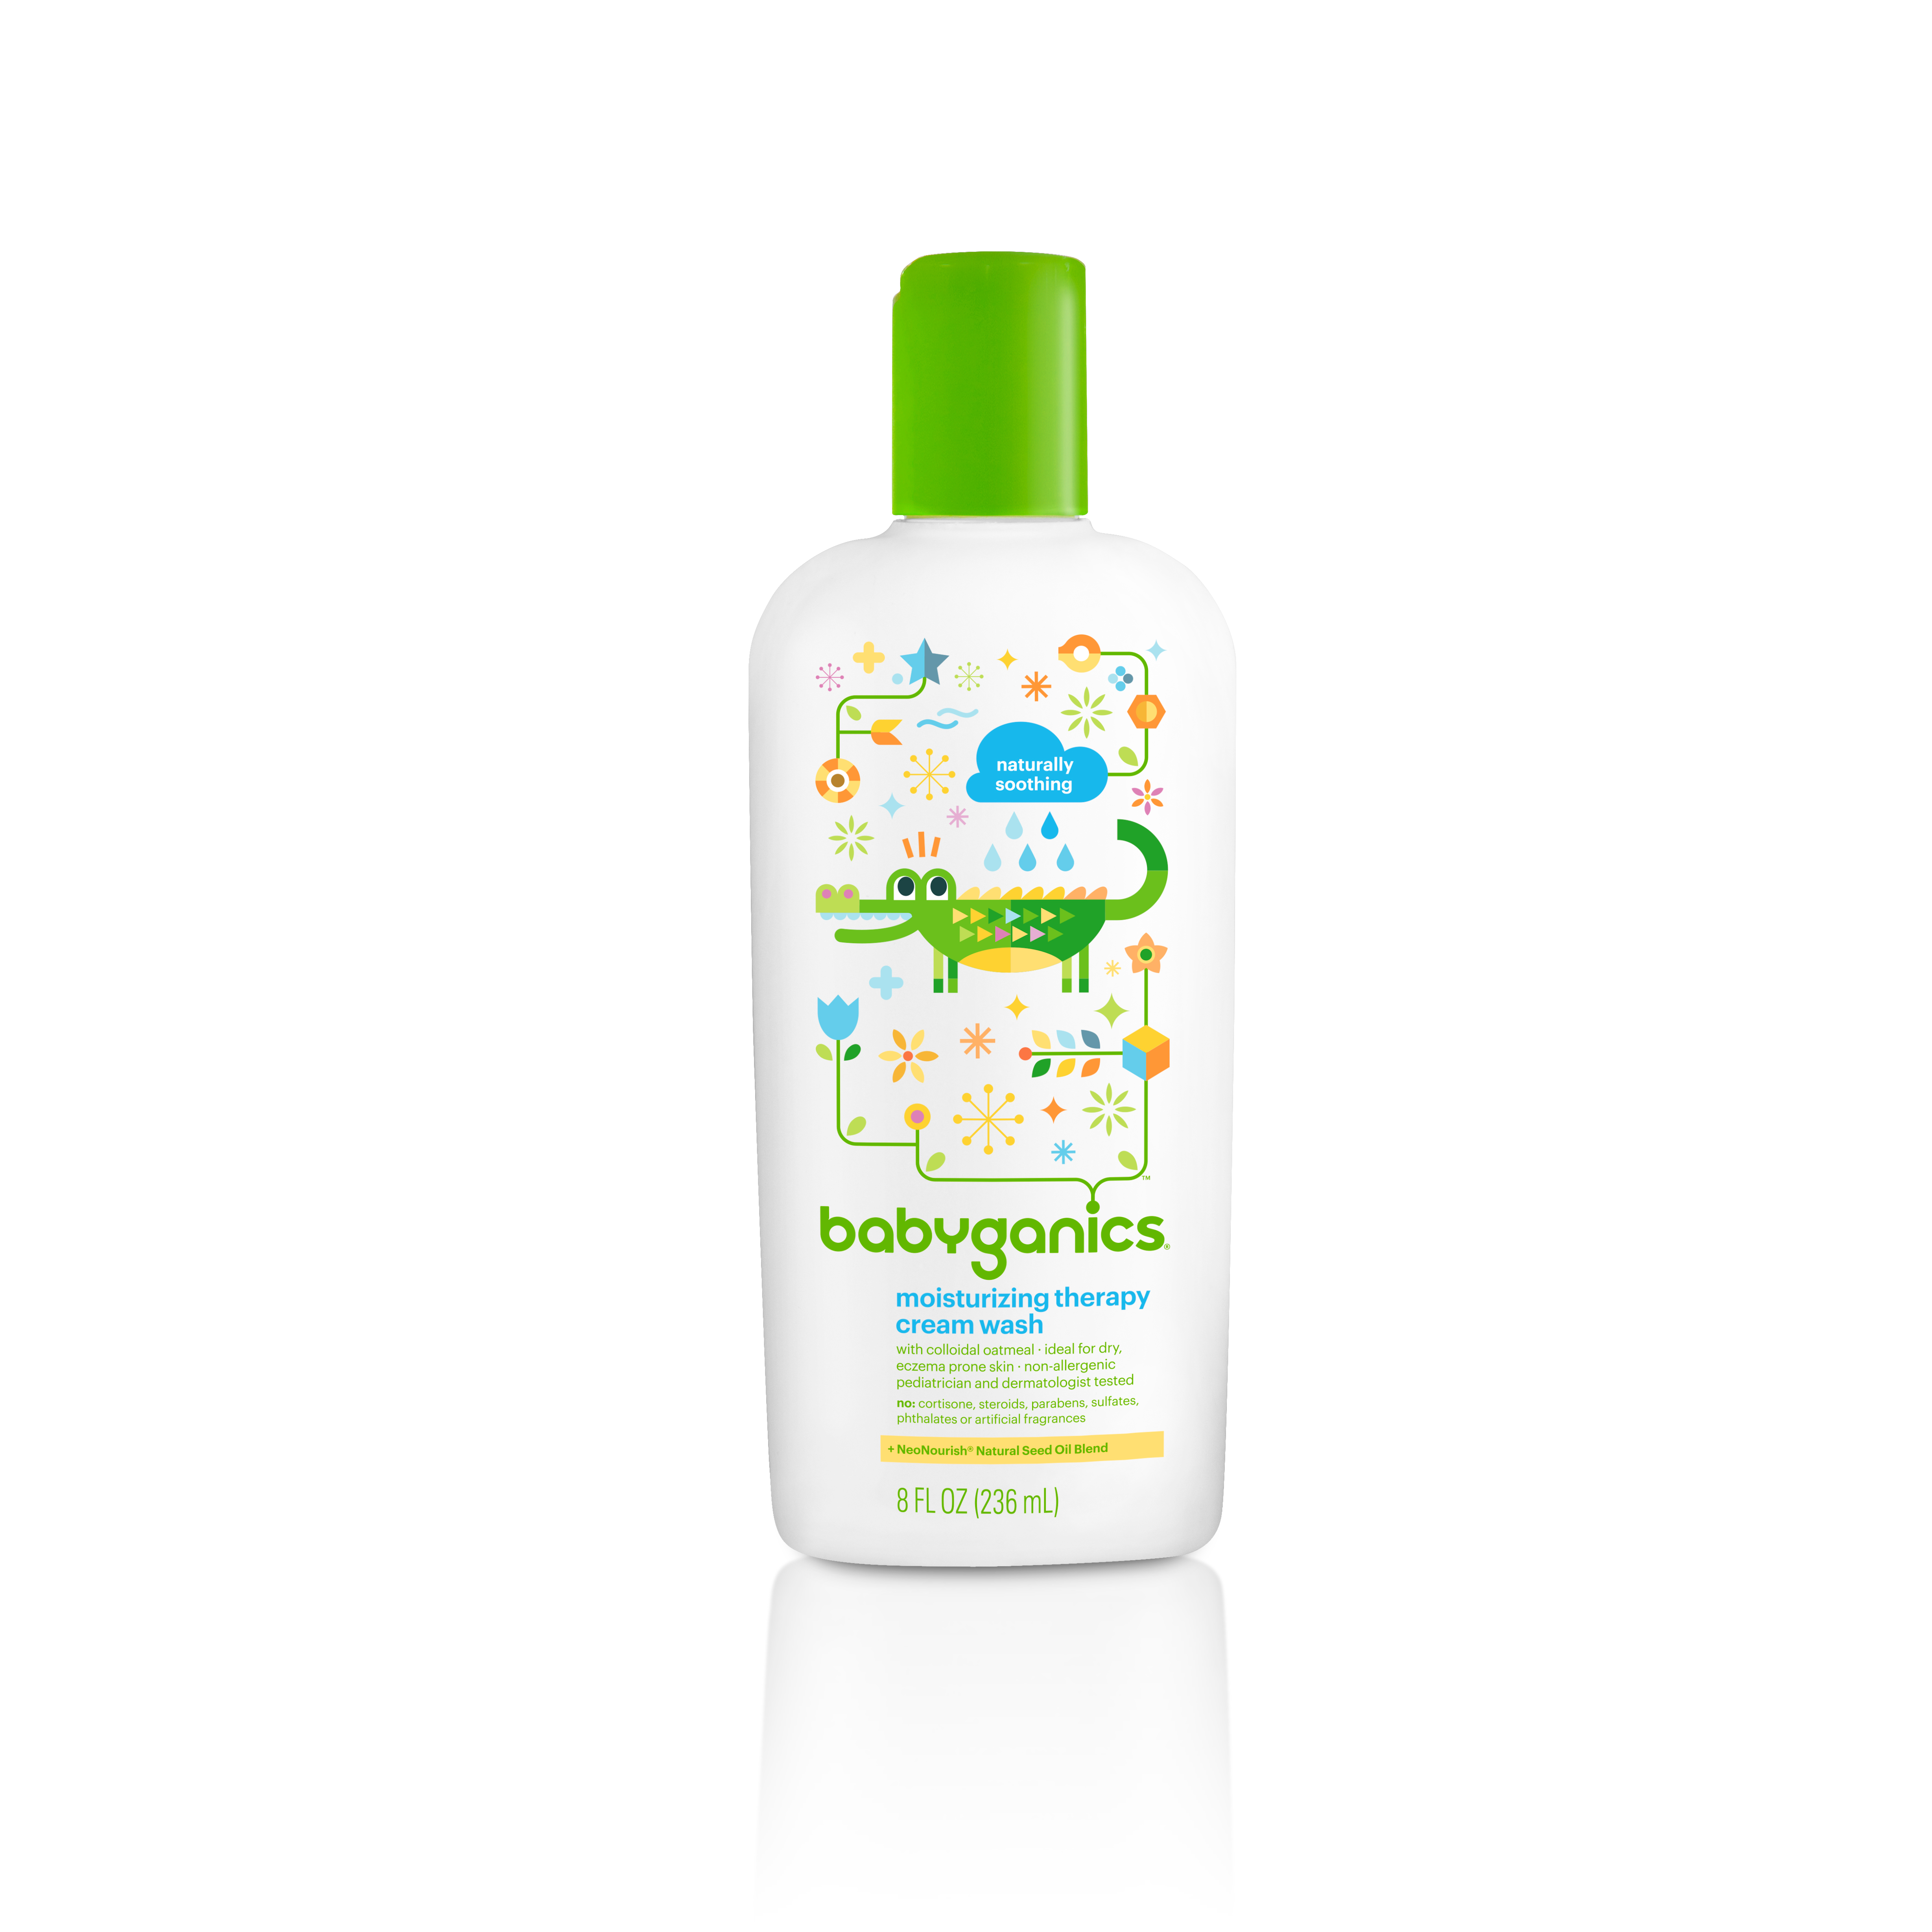 Protecting baby's skin: Using a moisturizing wash